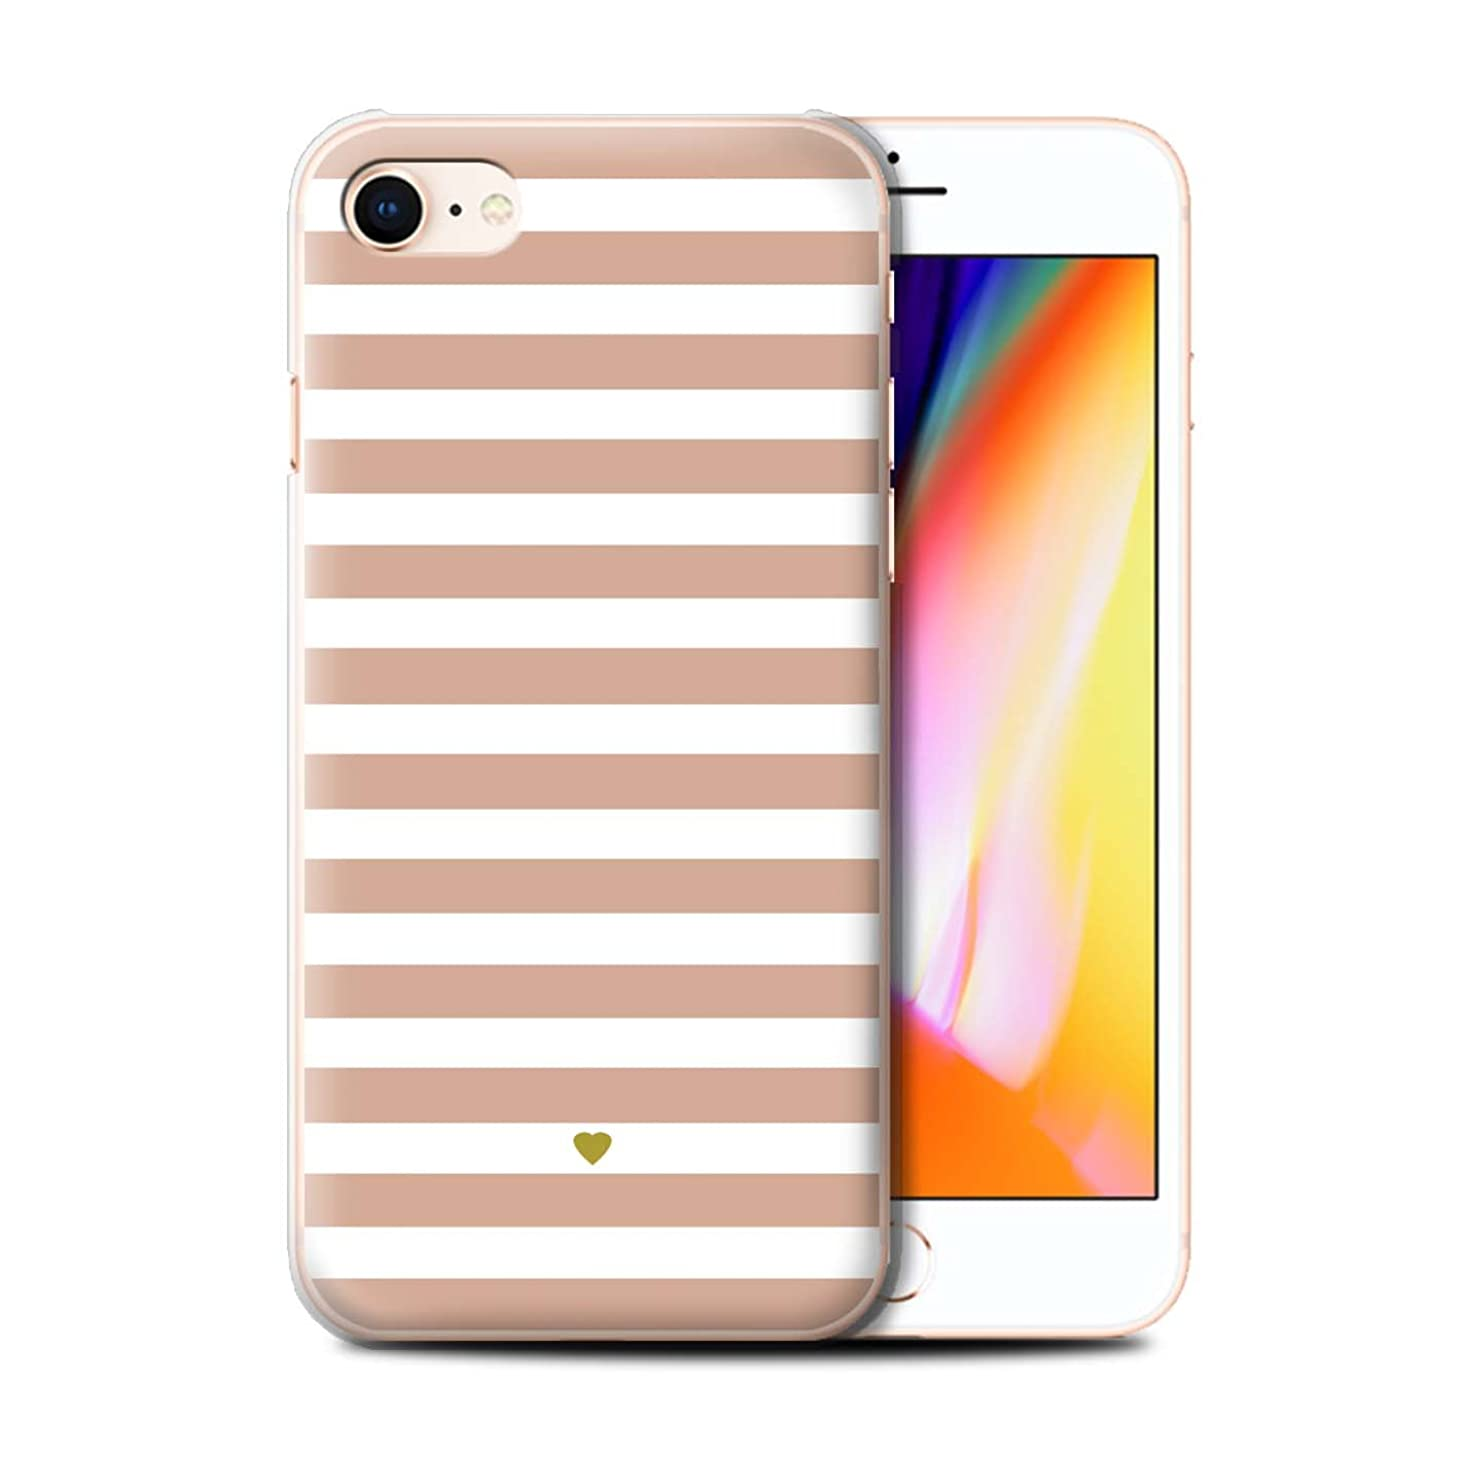 Personalized Custom Stripes/Striped Case for Apple iPhone 8 / Nude Pink Heart Design/Initial/Name/Text DIY Cover